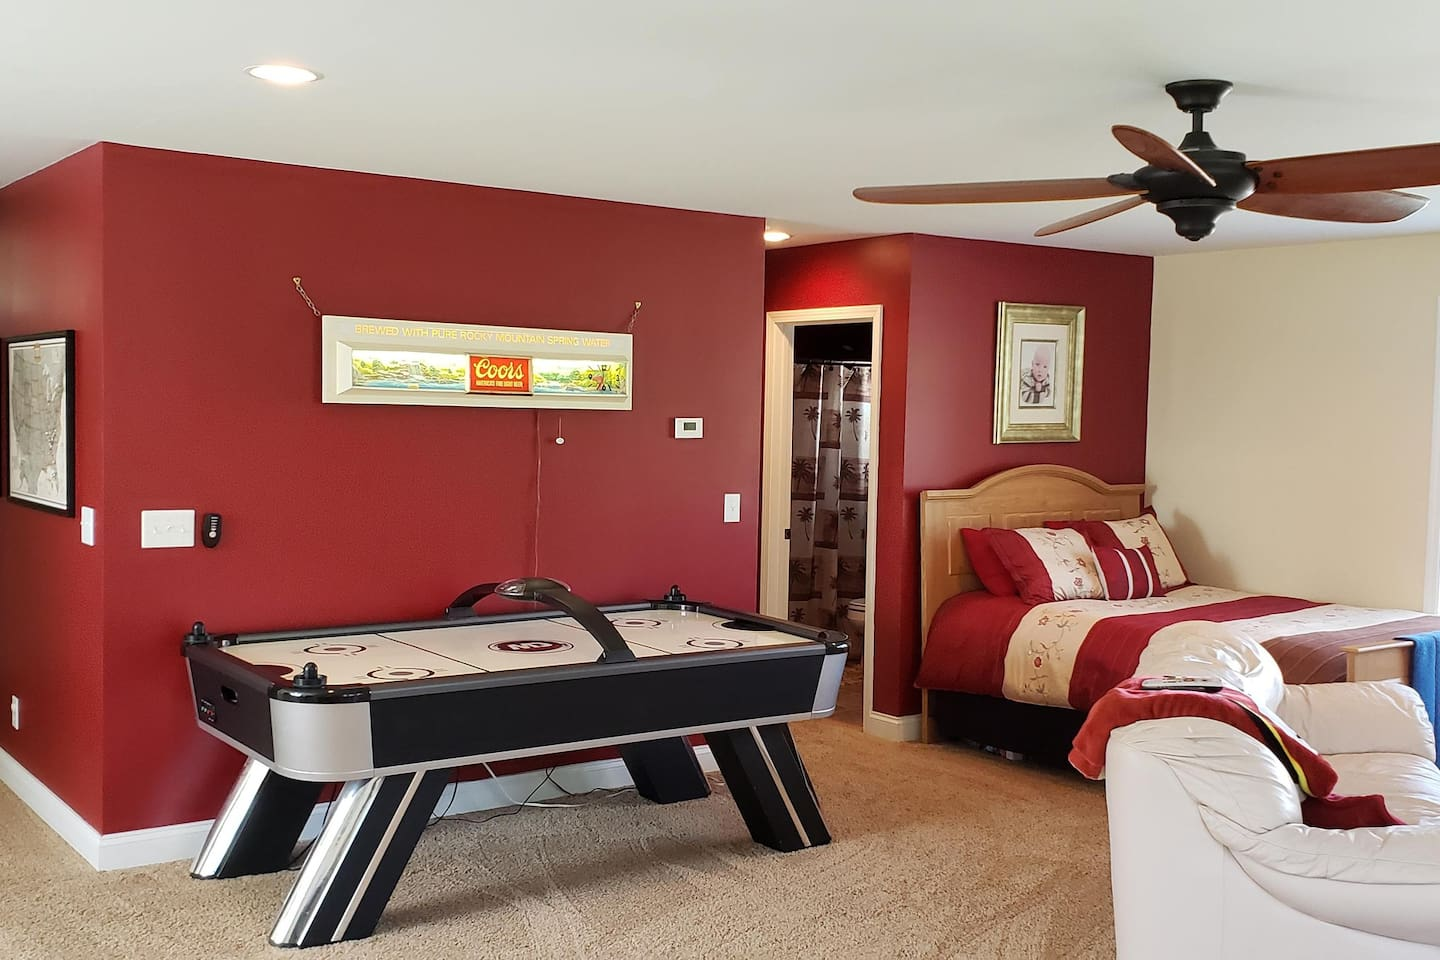 Large private room with full bathroom (shower/tub), couch, recliner, satellite t.v., ceiling fan, table games, and your own thermostat - separate from the rest of the house.